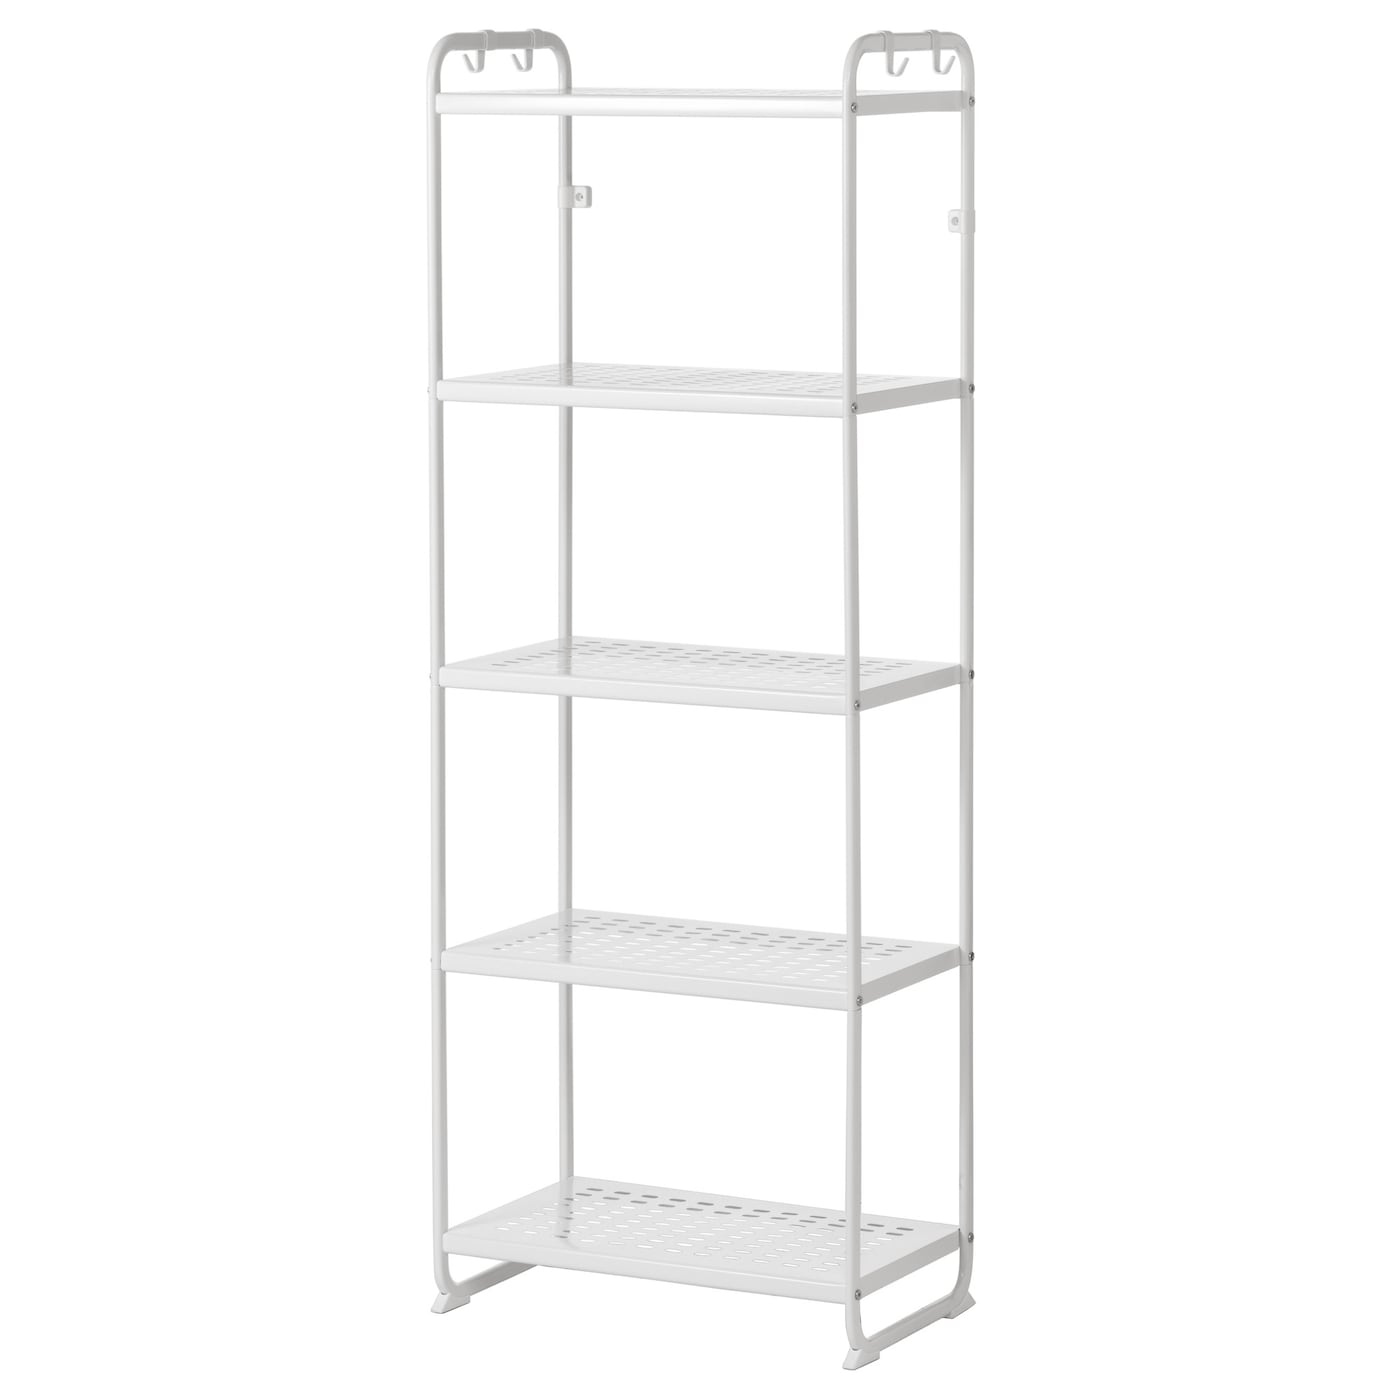 IKEA MULIG shelving unit Can also be used in bathrooms and other damp areas indoors.